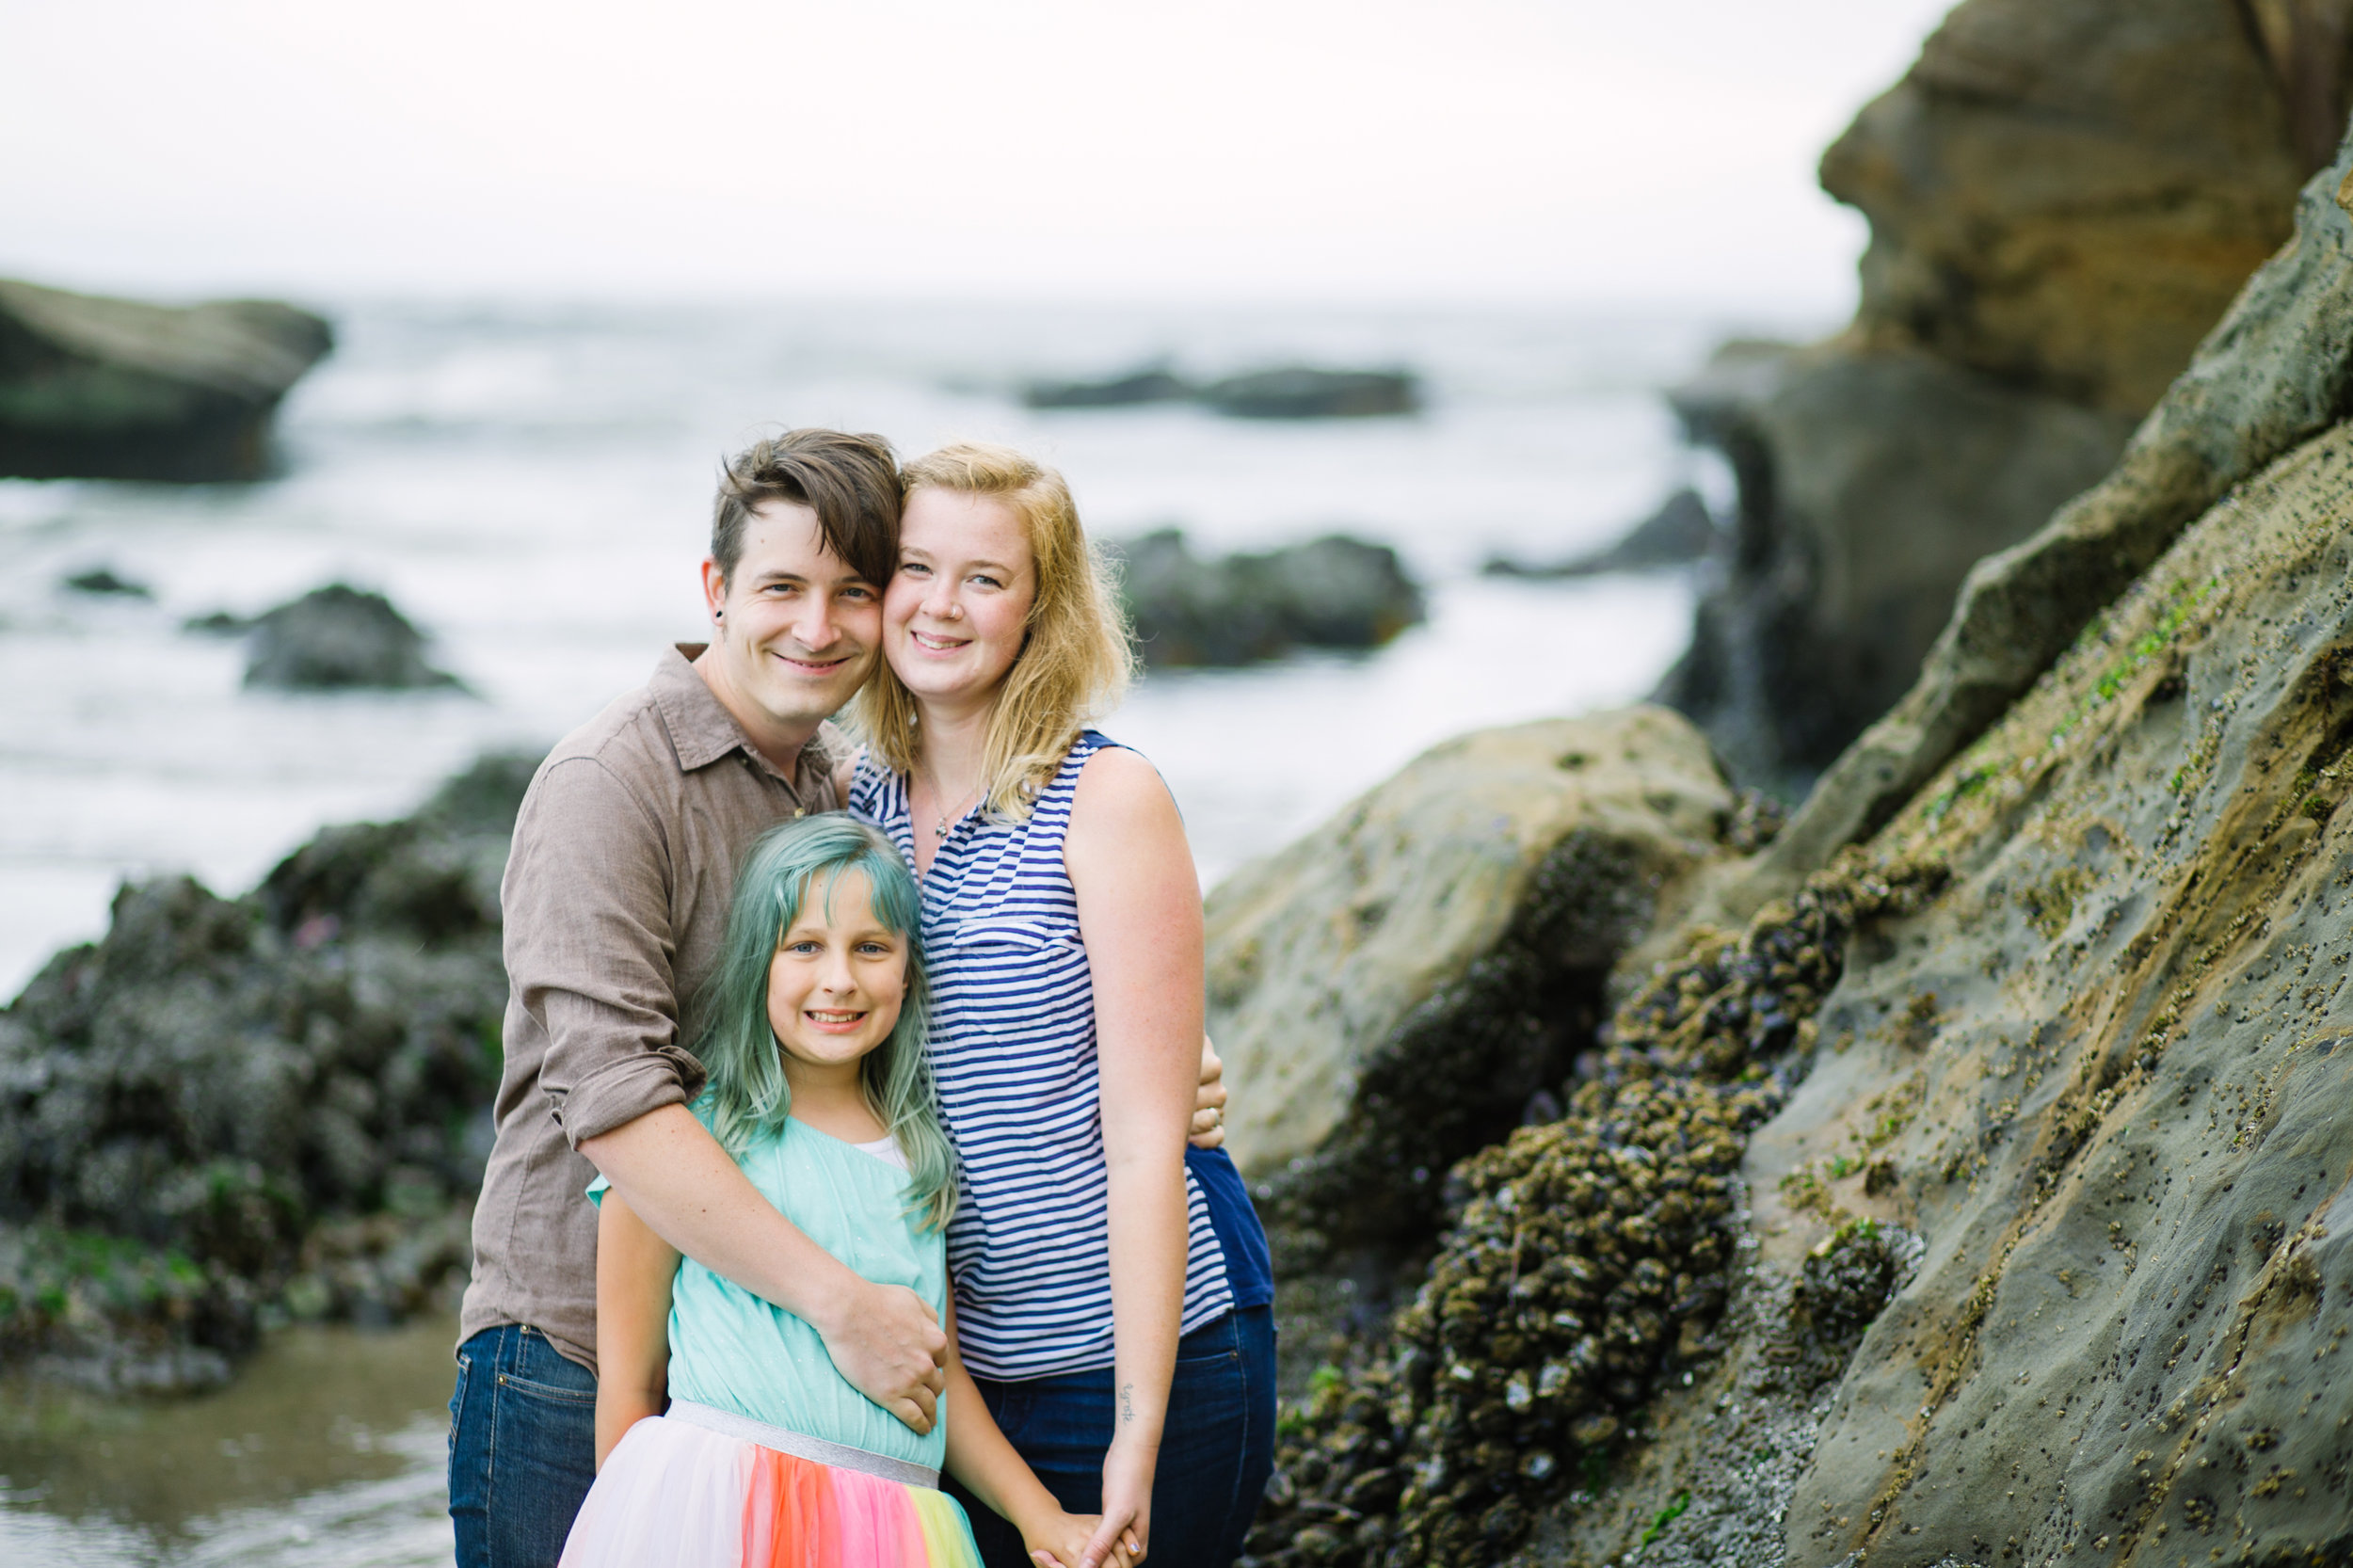 pacific-city-family-photography-23.jpg